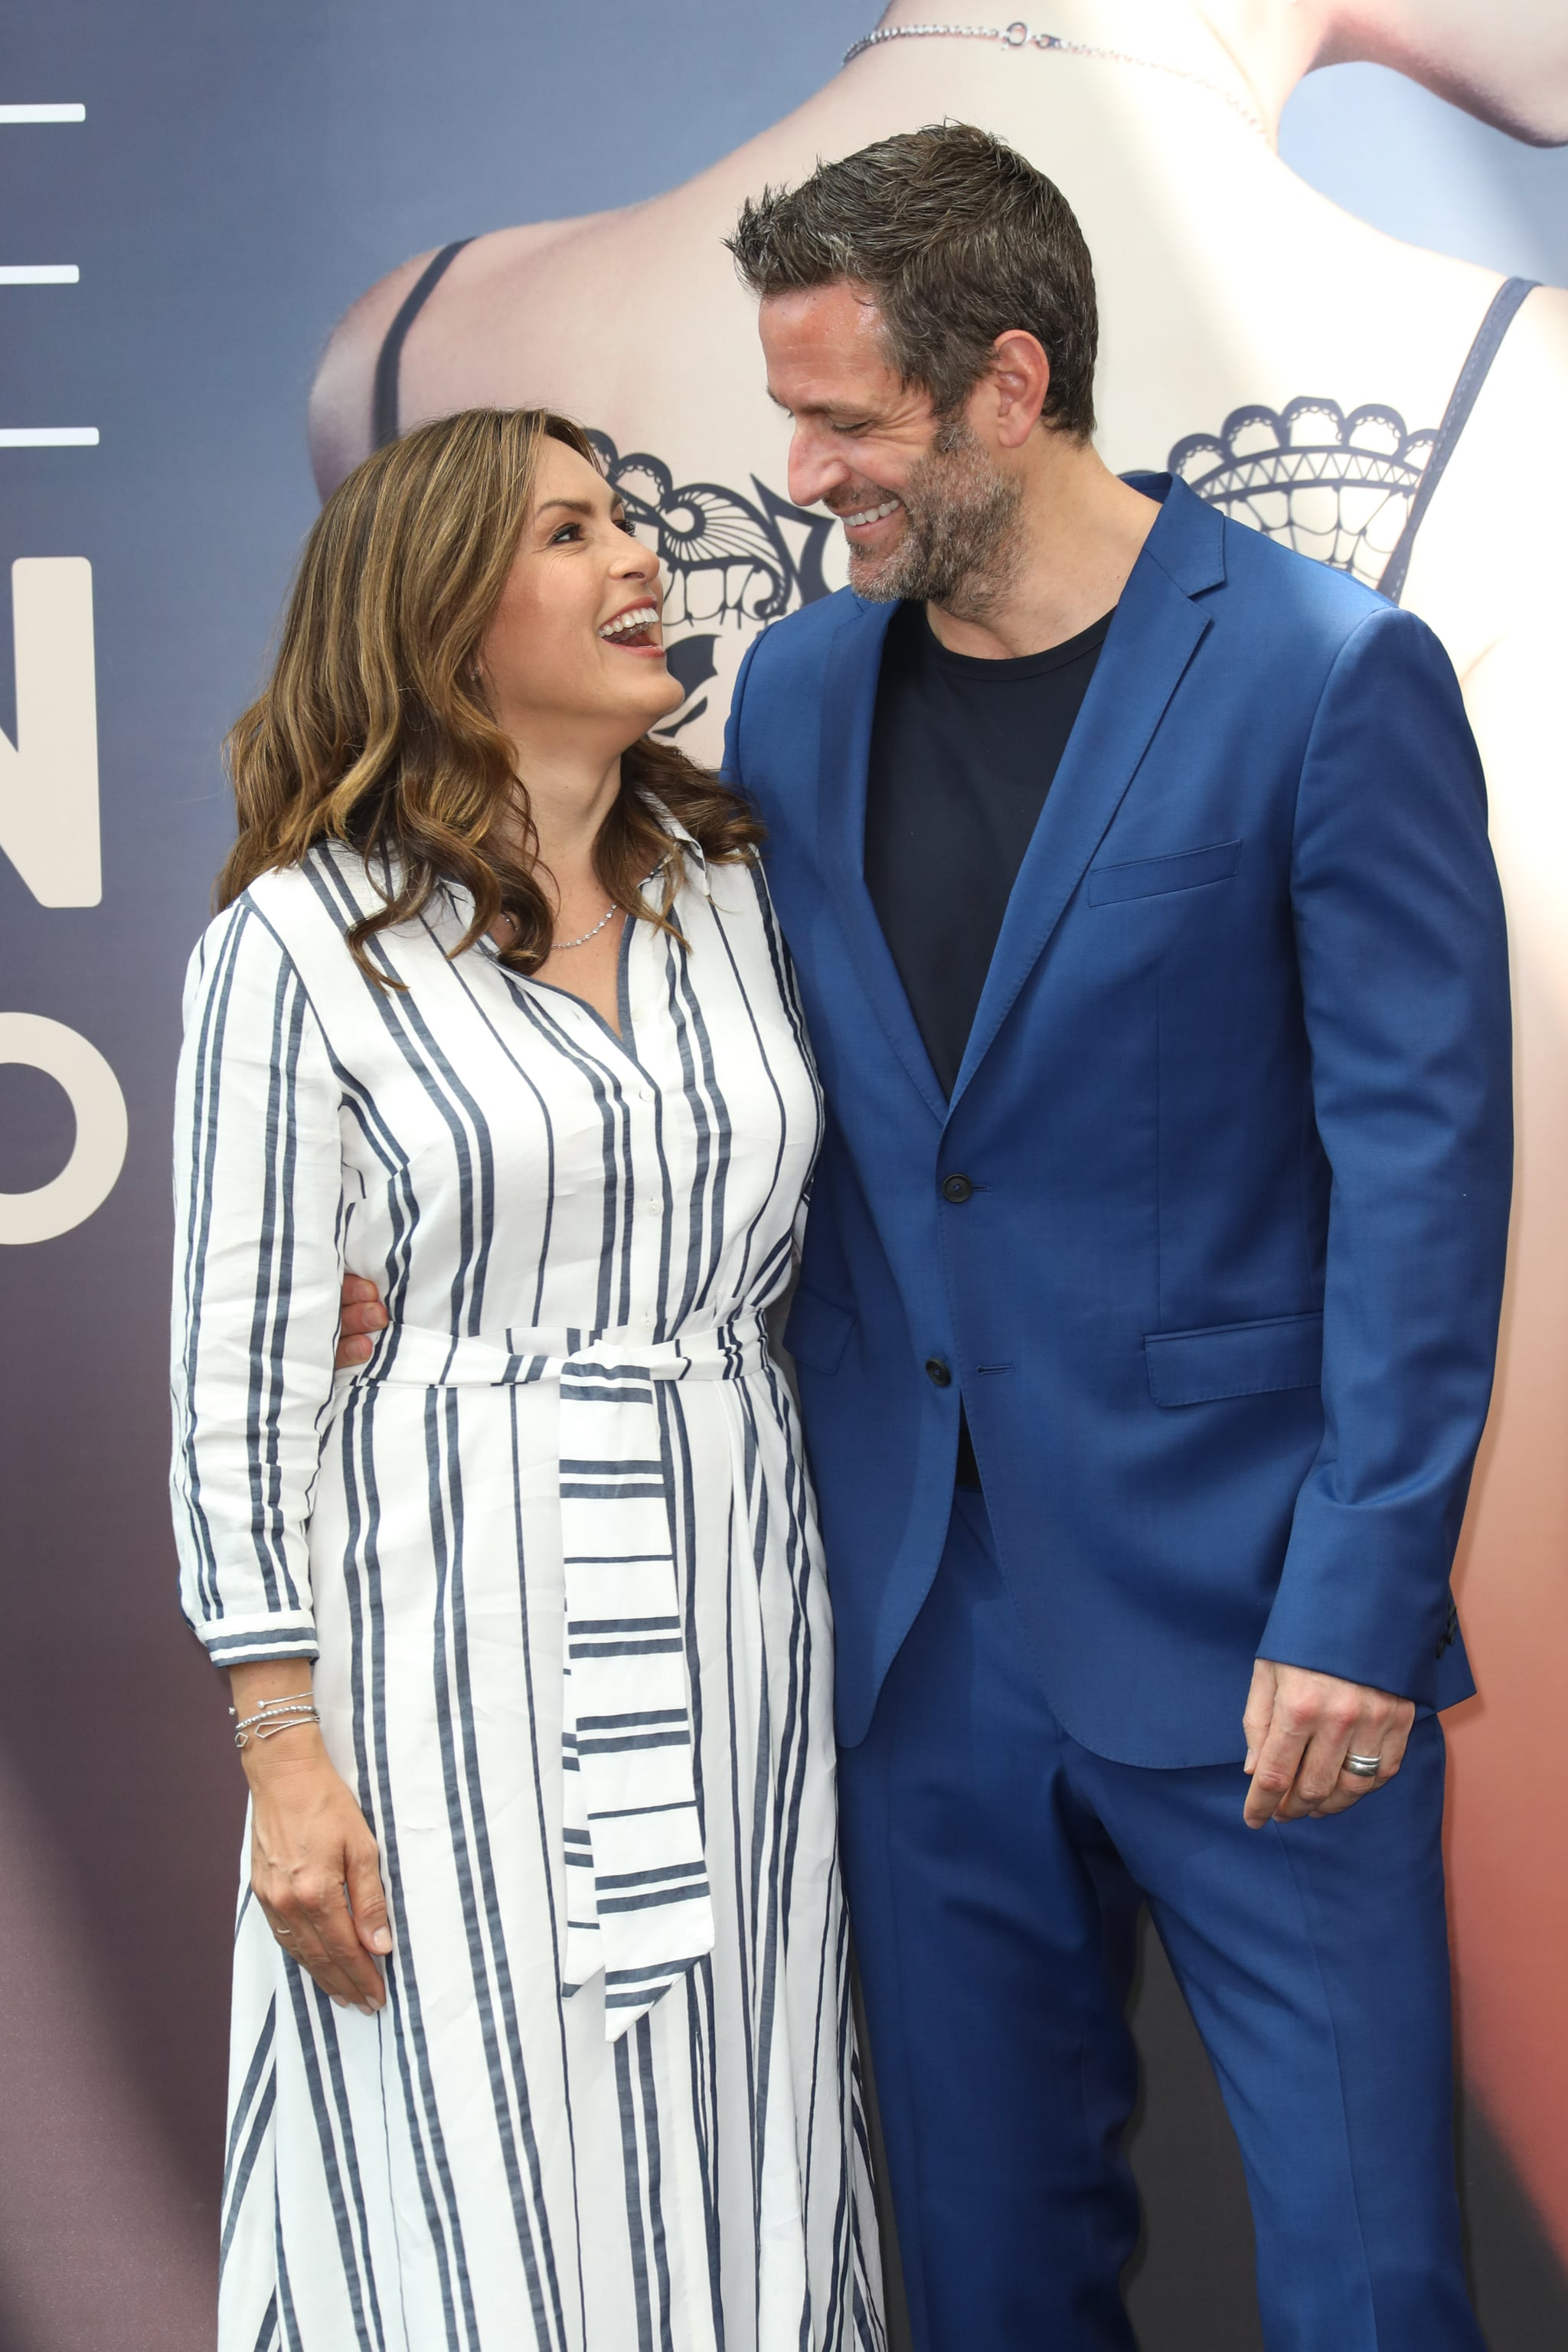 MONTE-CARLO, MONACO - JUNE 17:  Mariska Hargitay from the serie 'Law & Order : SVU' and Peter Hermann attend a photocall during the 58th Monte Carlo TV Festival on June 17, 2018 in Monte-Carlo, Monaco.  (Photo by Tony Barson/FilmMagic)